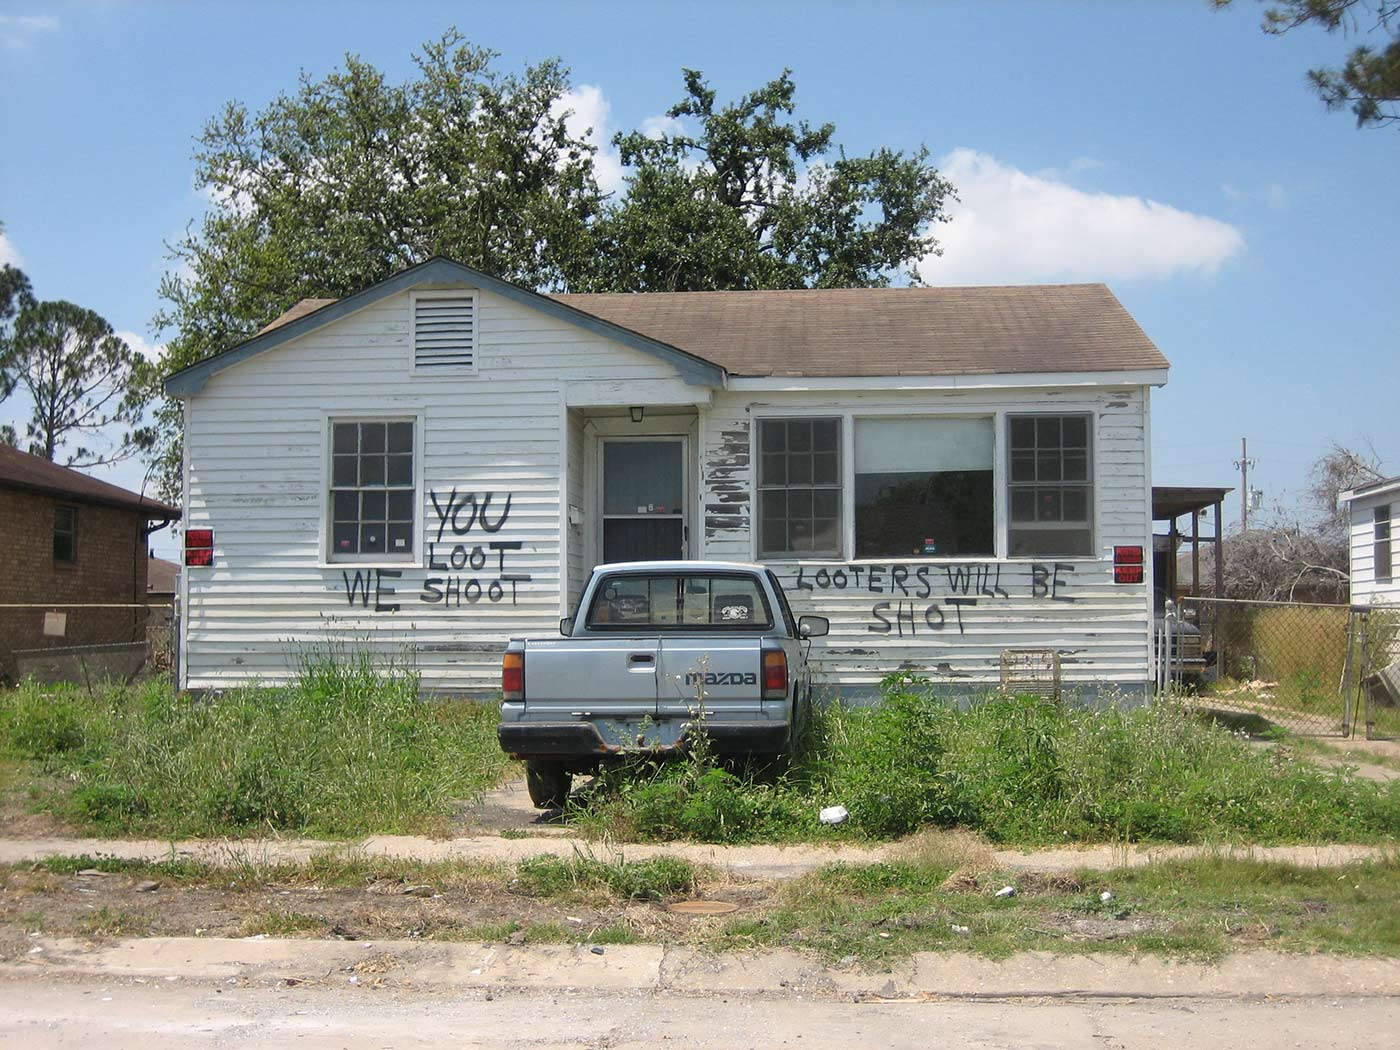 "Picture shows a house in New Orleans sprayed painted with the words, ""You loot, we shoot."""